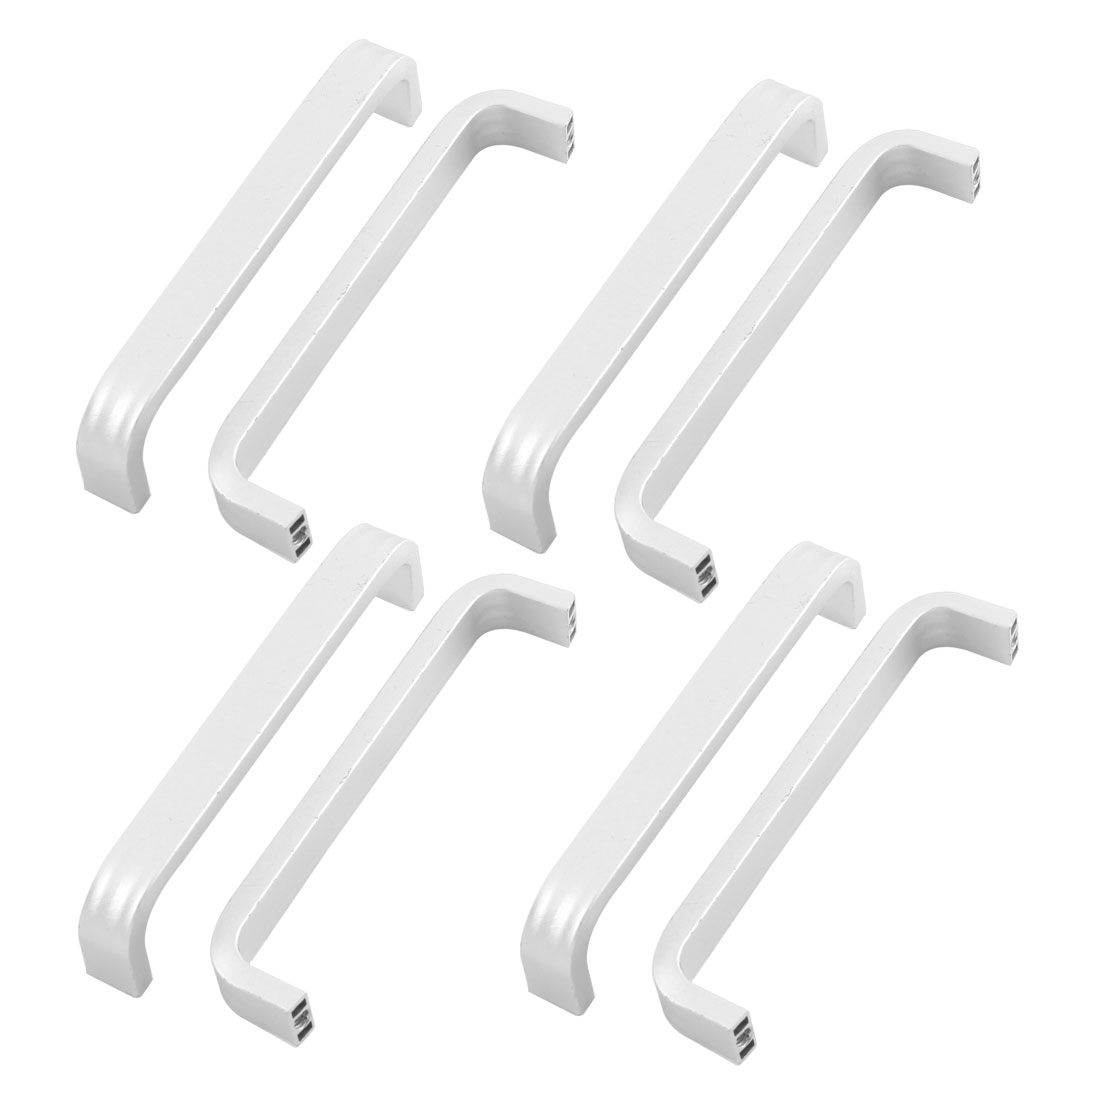 8pcs Cabinet Drawer Cupboard Door Pull Handles Grip 96mm Length